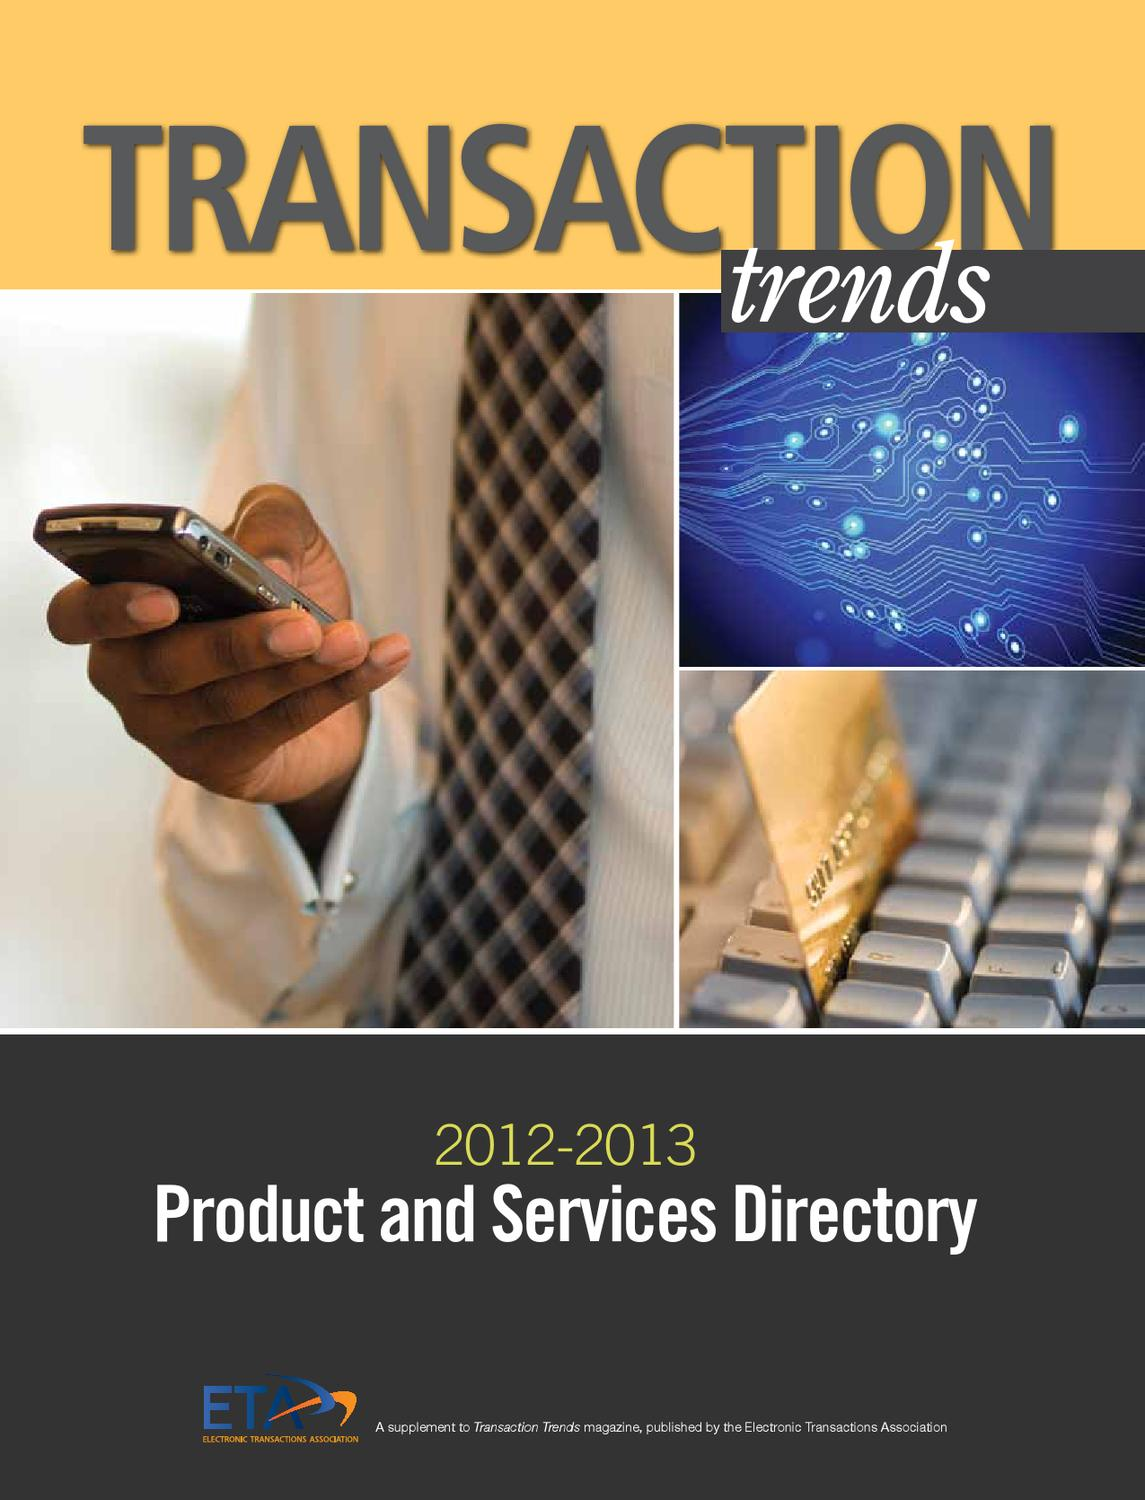 Transaction Trends Product and Services Directory 2013 by